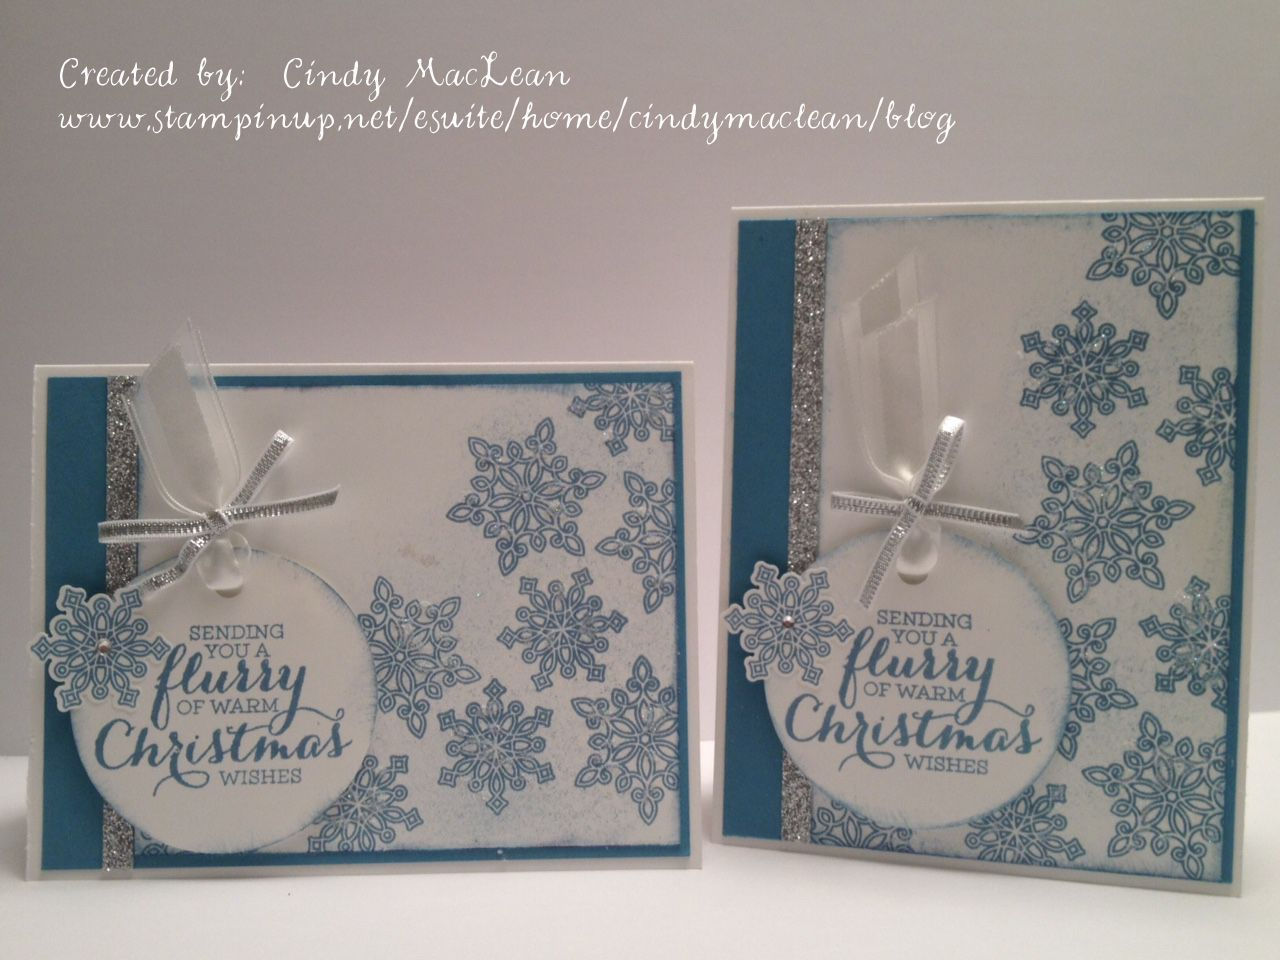 Flurry of Wishes stamp set and Snow Flurry Punch from Stampin' Up!